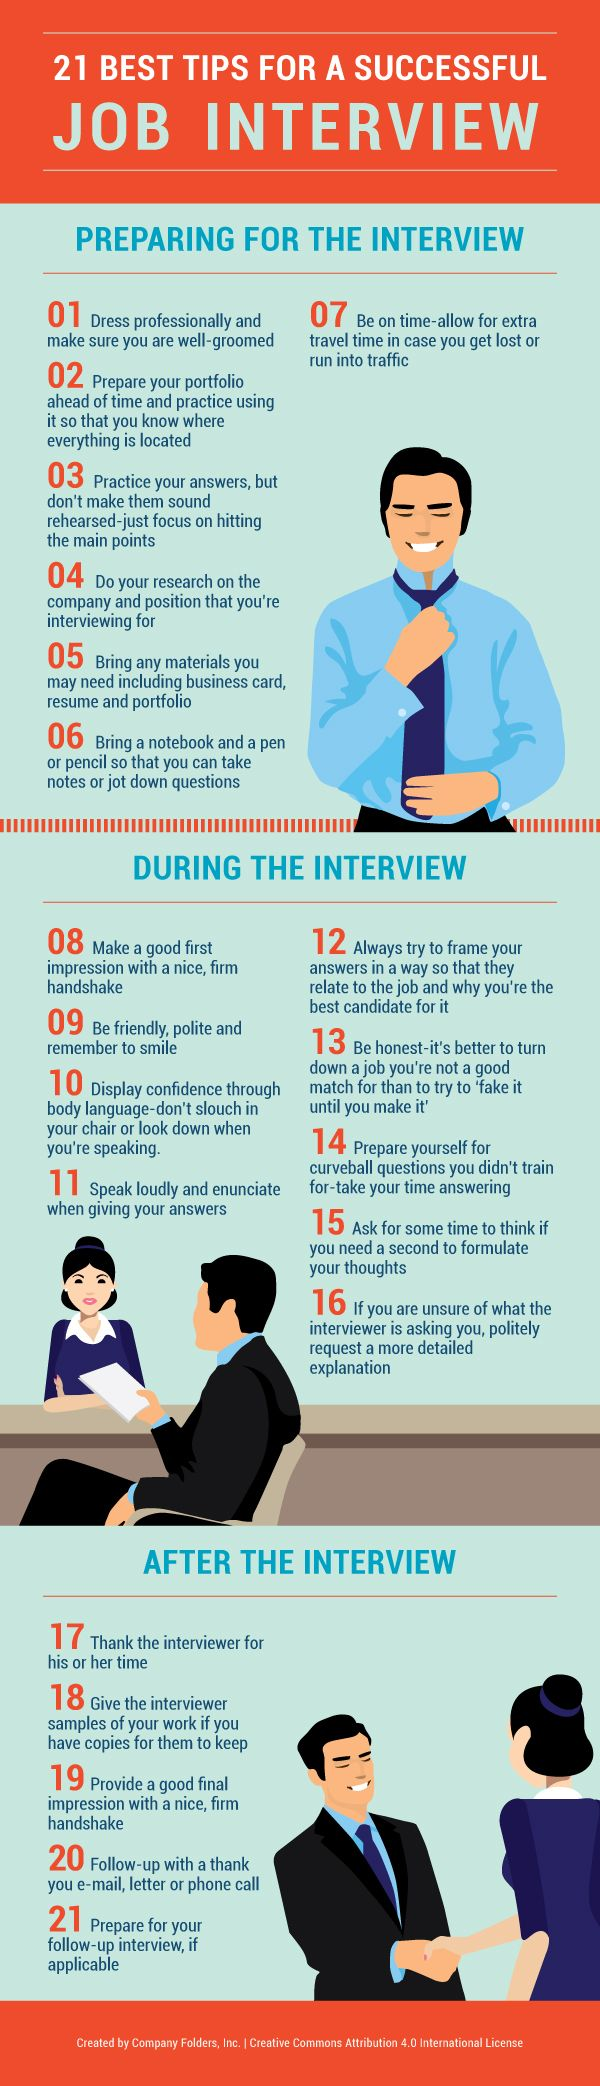 best ideas about career help resume job search 21 tips for a successful job interview includes advice that is applicable to before during and after your employment interview